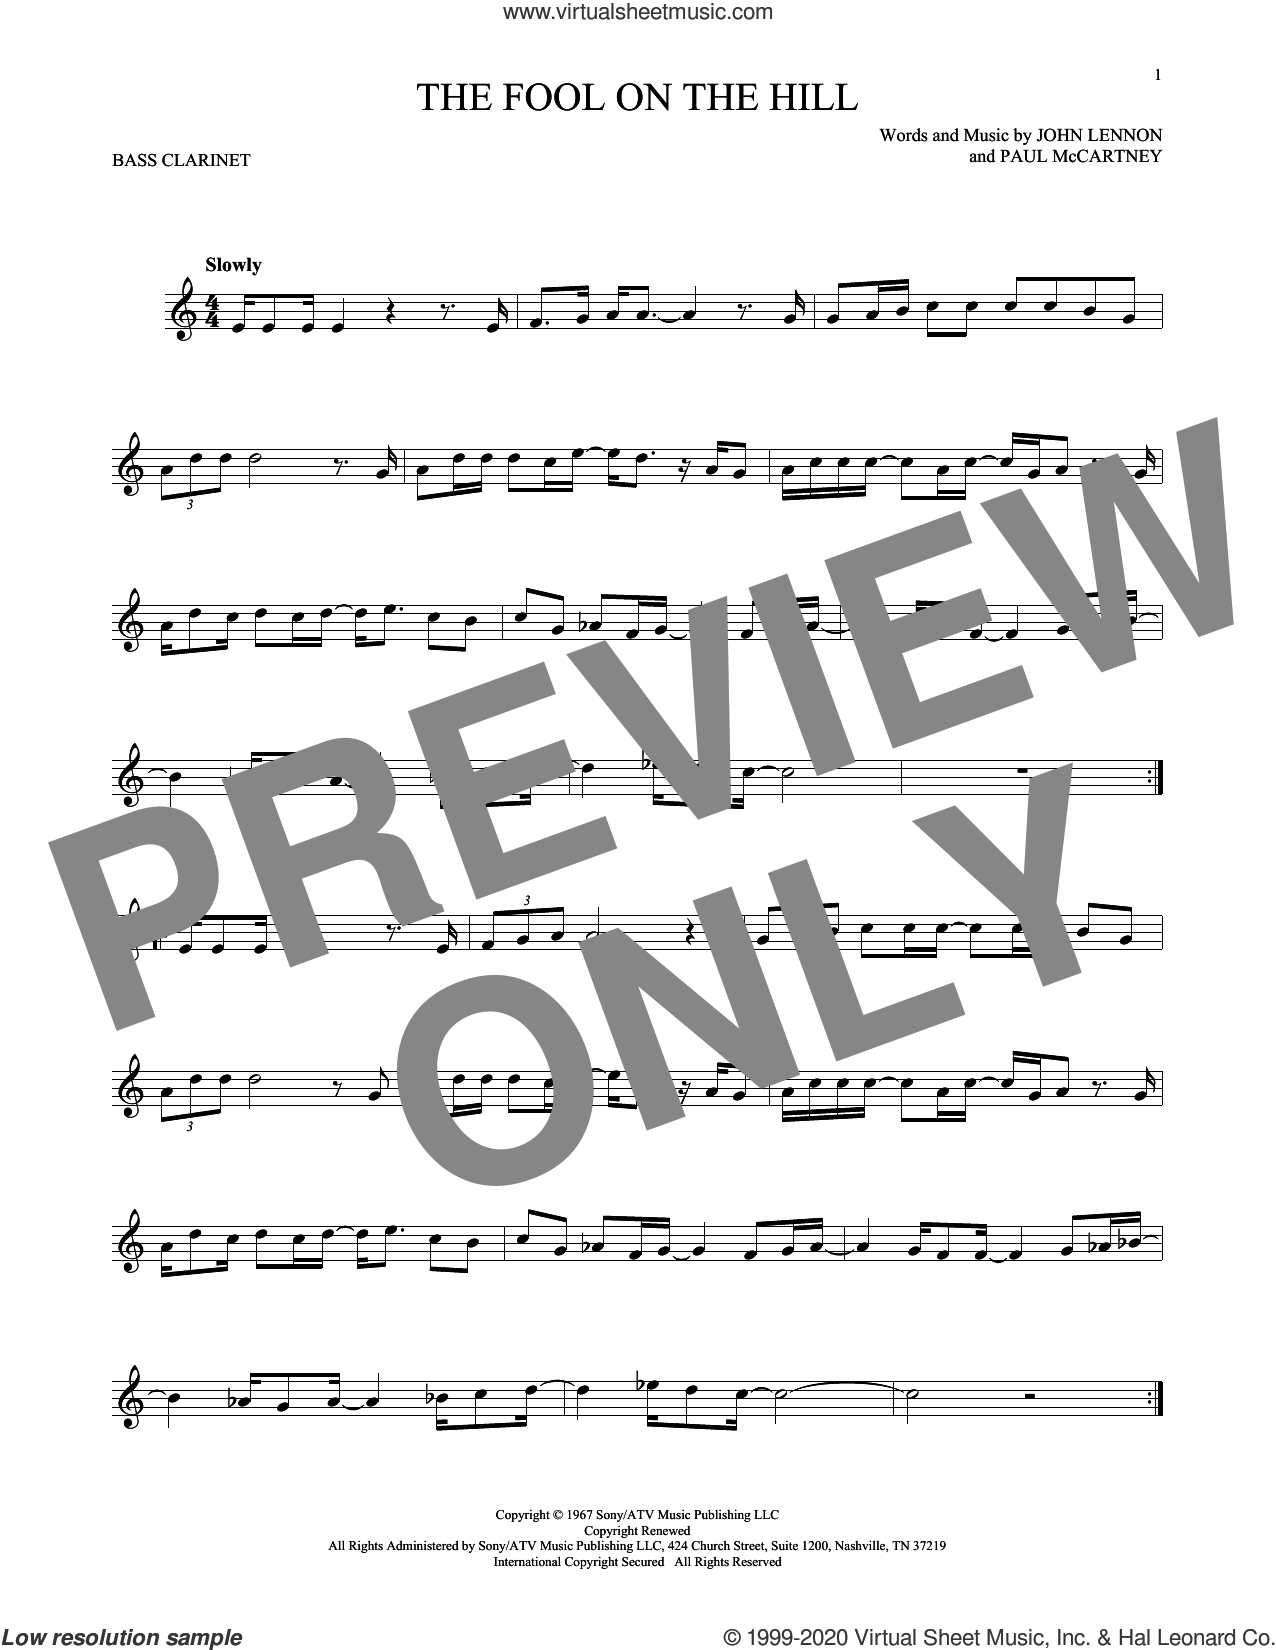 The Fool On The Hill sheet music for Bass Clarinet Solo (clarinetto basso) by The Beatles, John Lennon and Paul McCartney, intermediate skill level